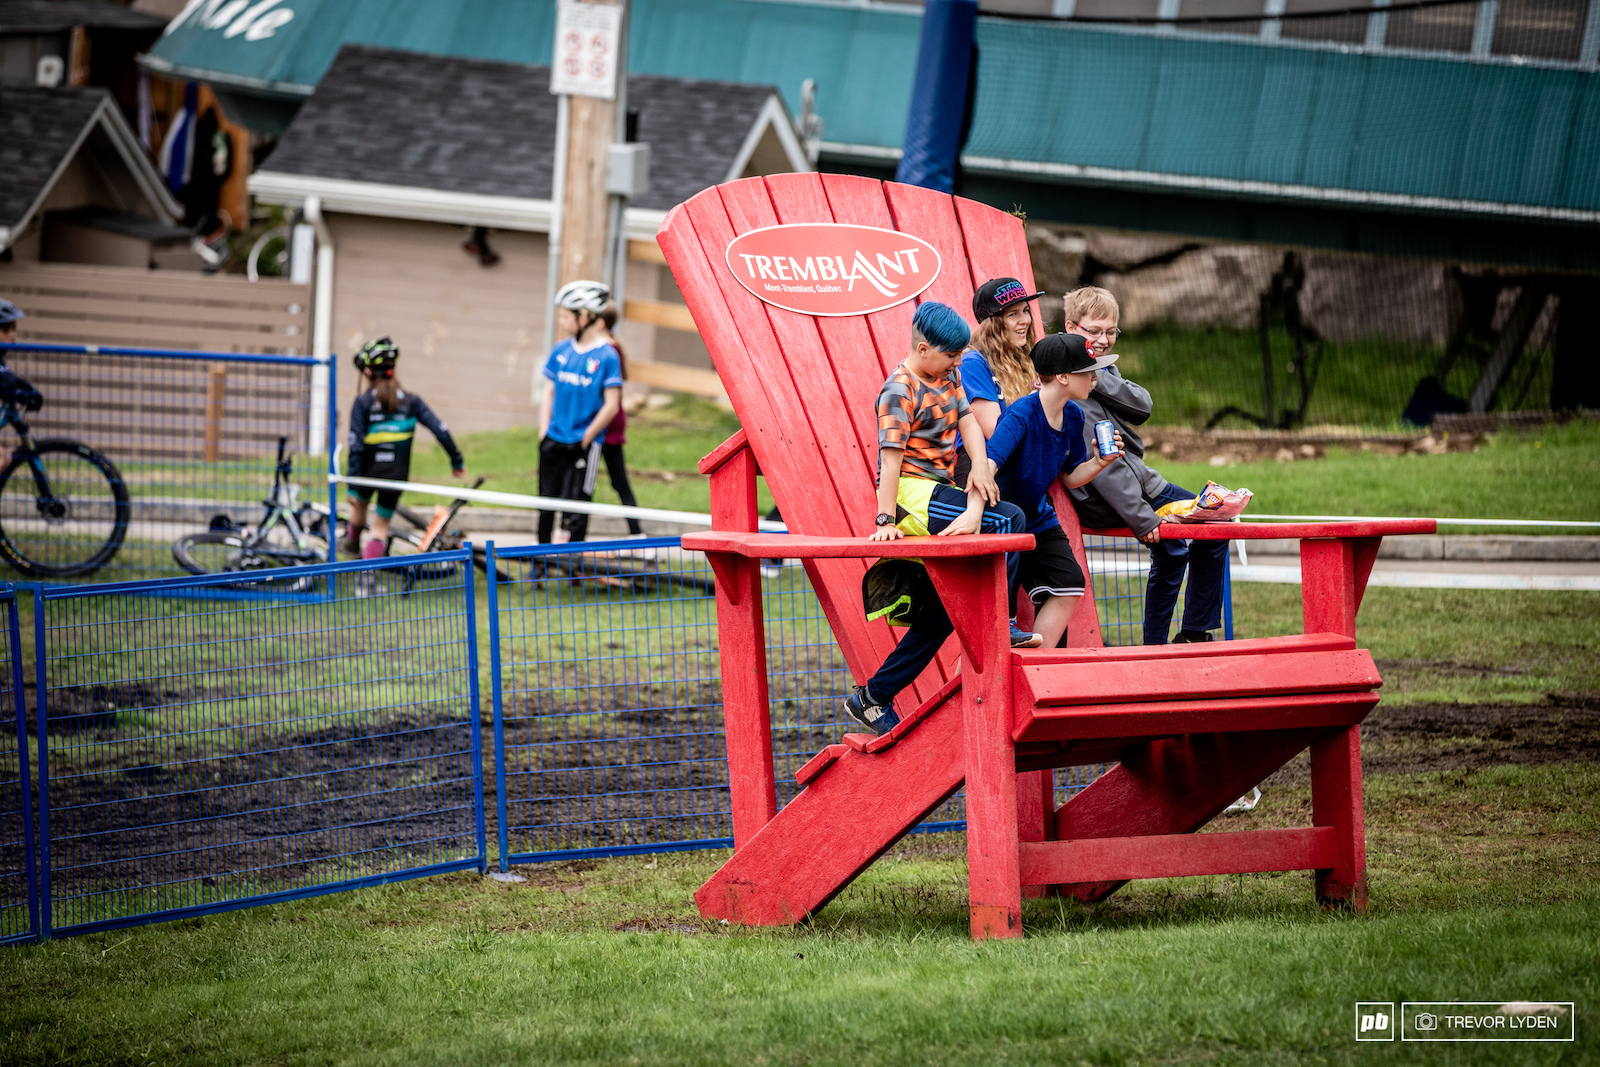 World famous giant Tremblant chair